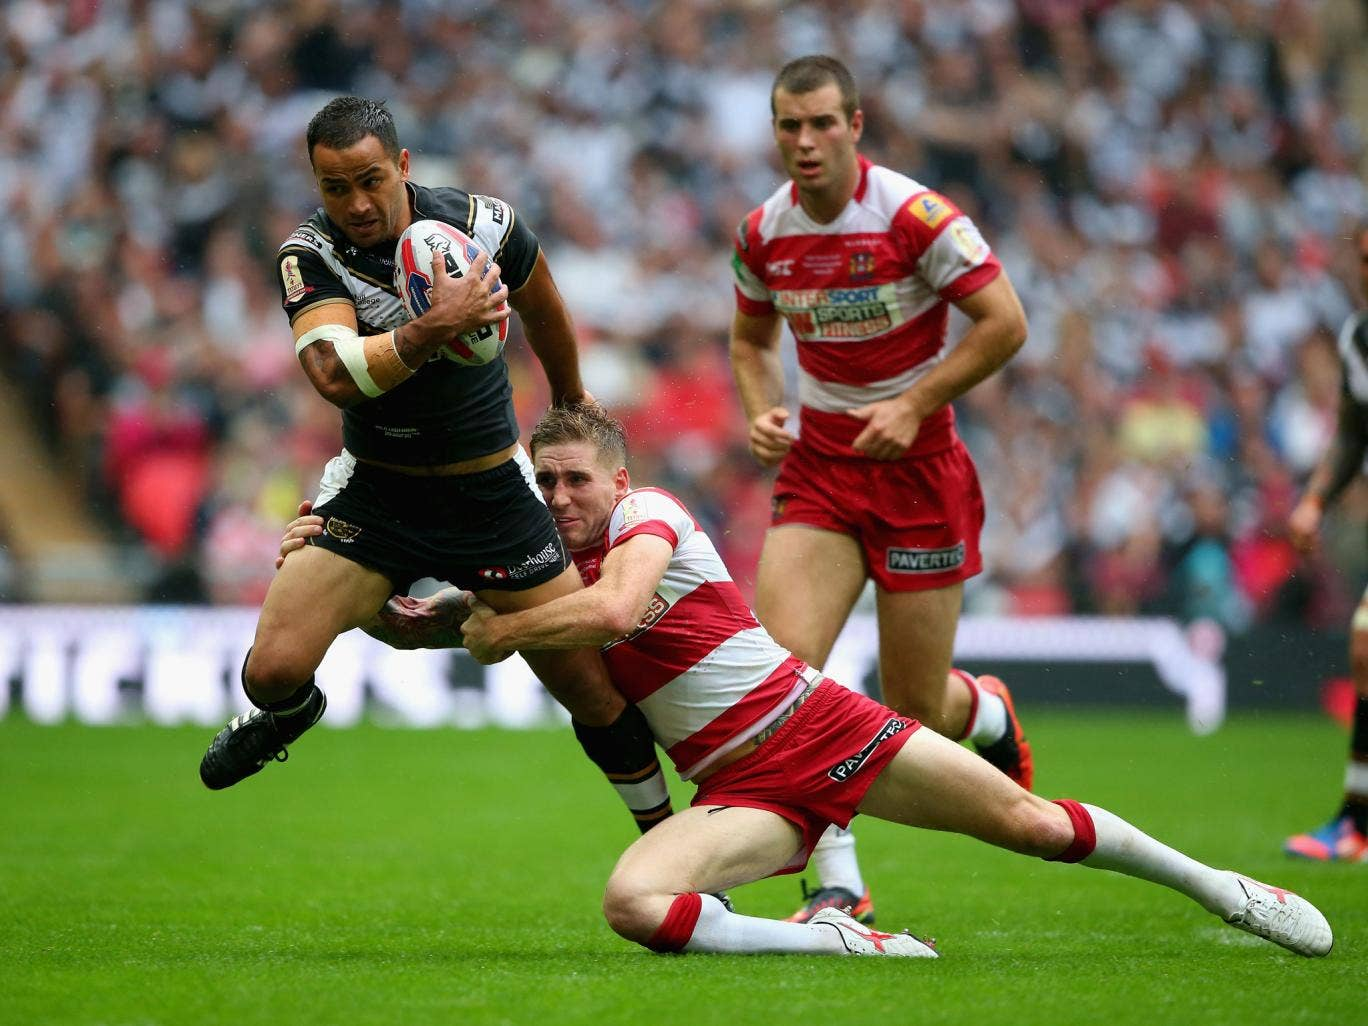 Sam Tomkins of Wigan Warriors tackles Aaron Heremaia of Hull FC